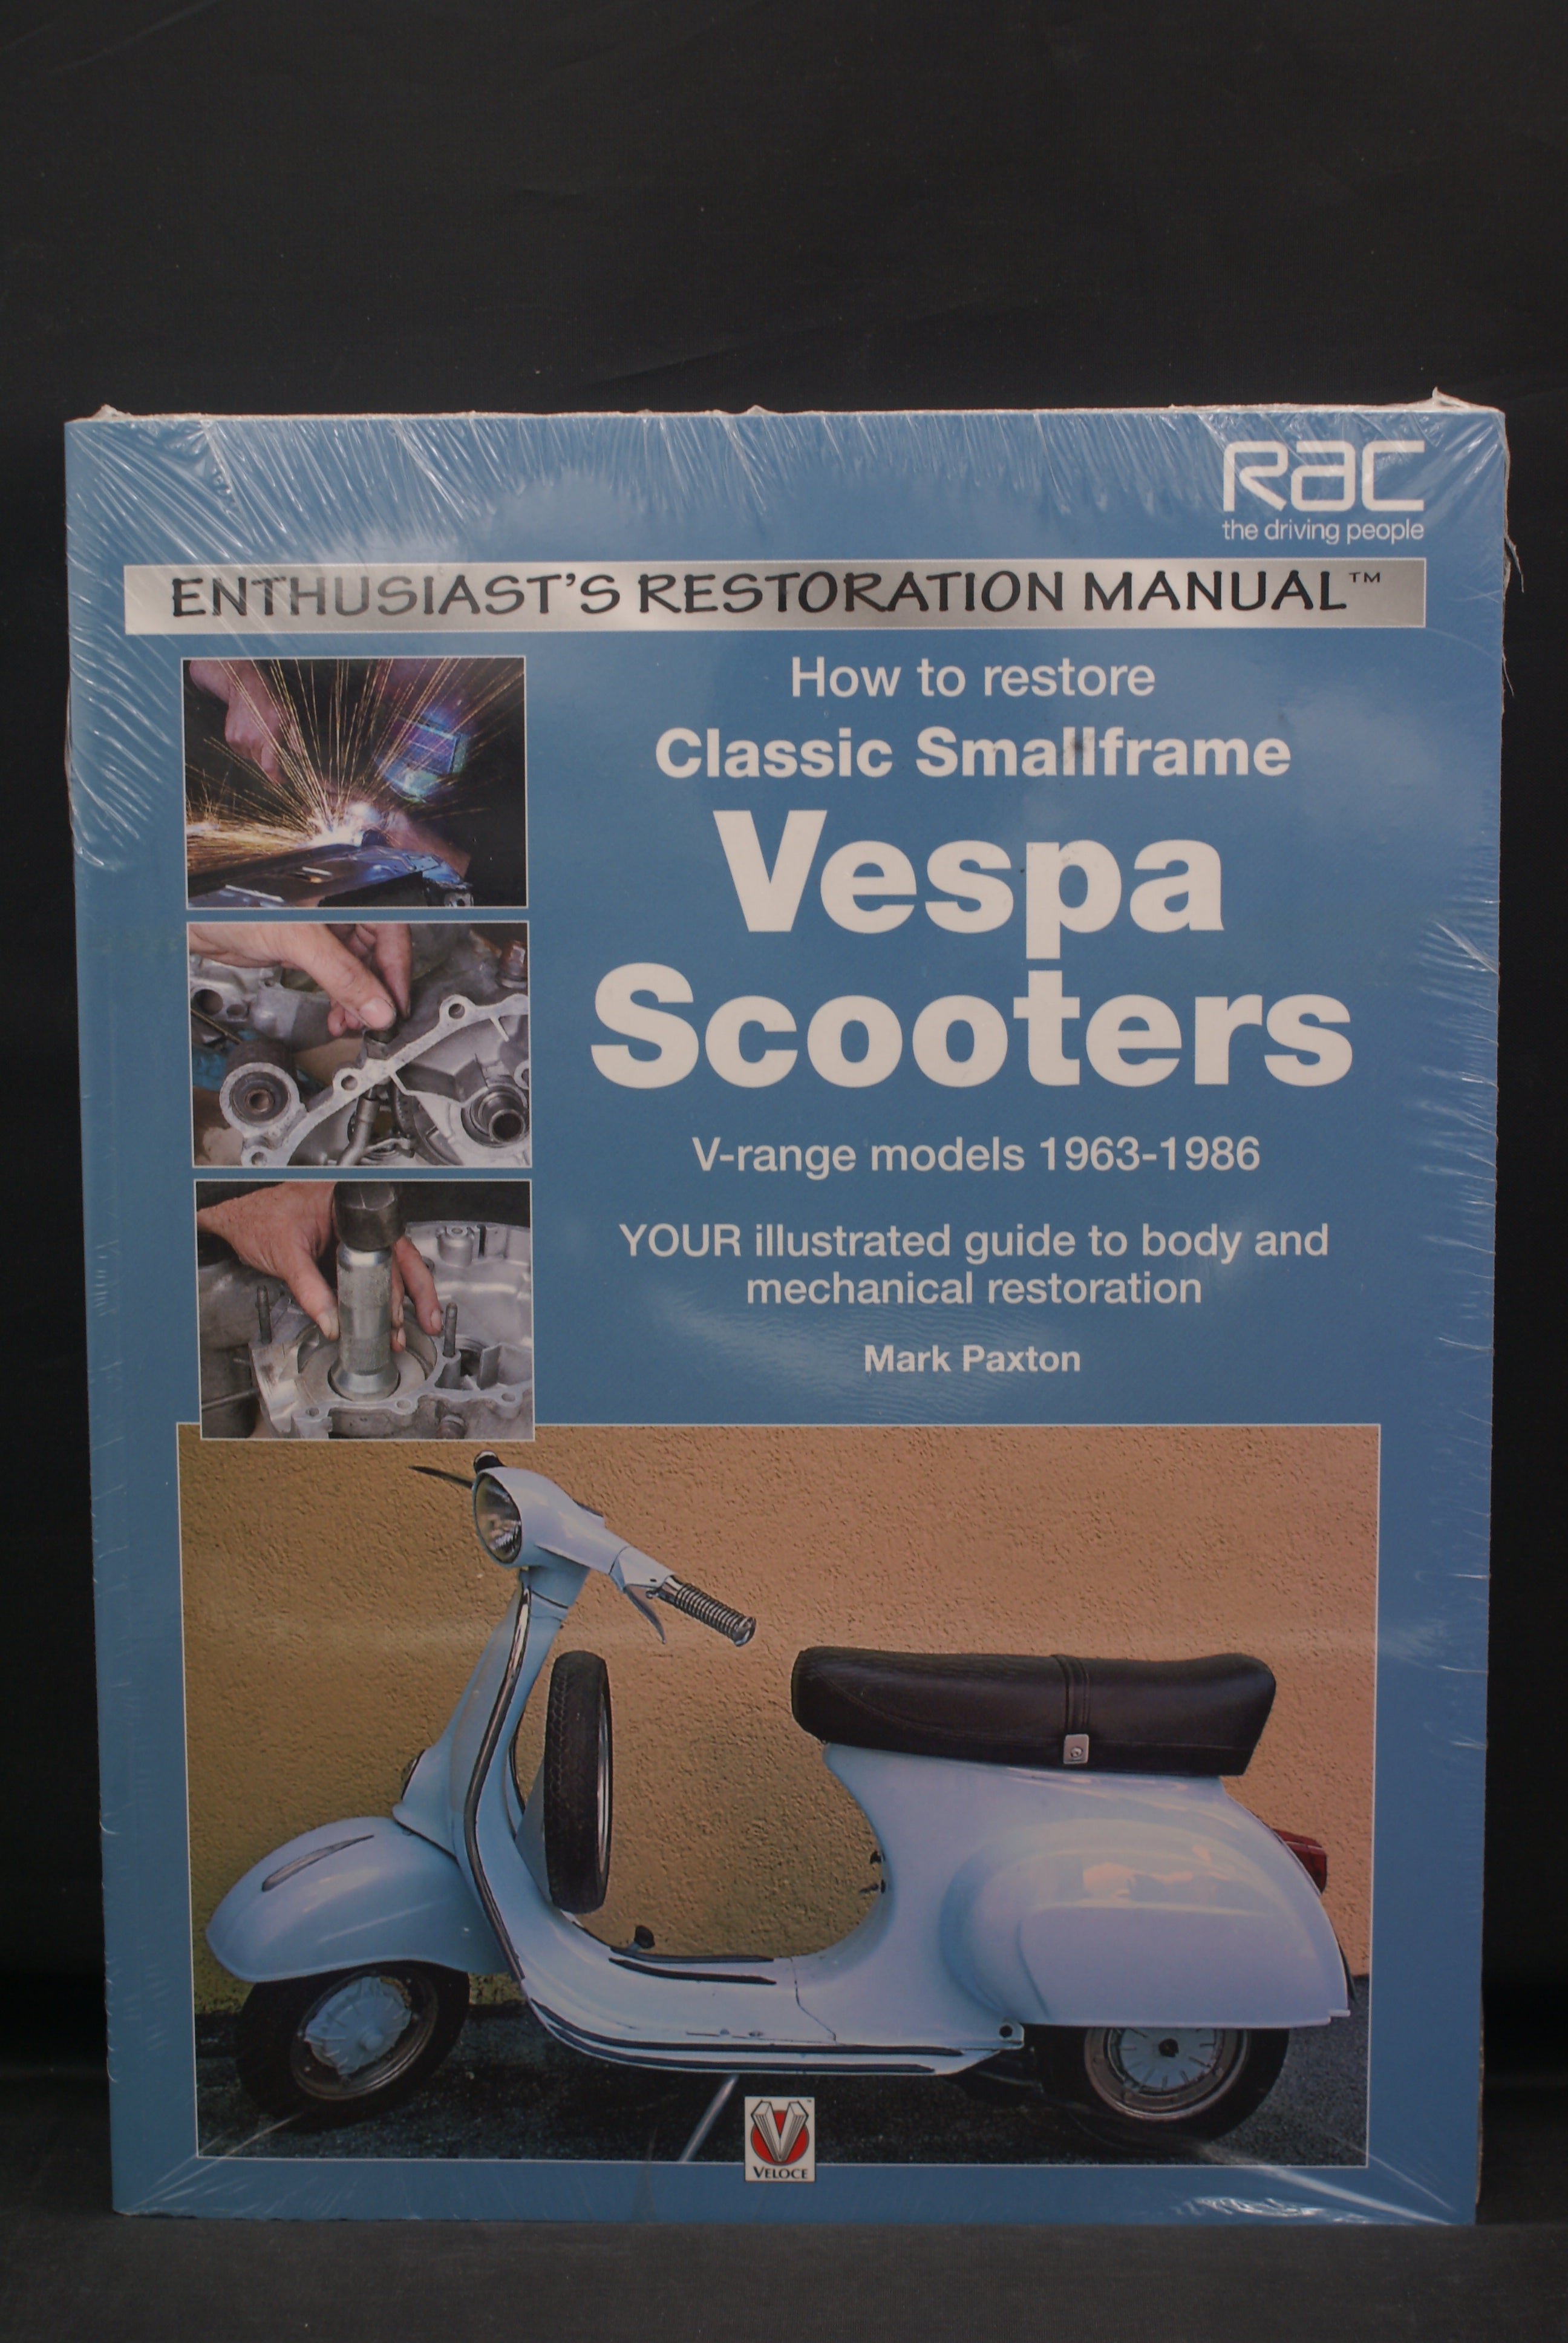 Vespa Scooters, Restoration Manual